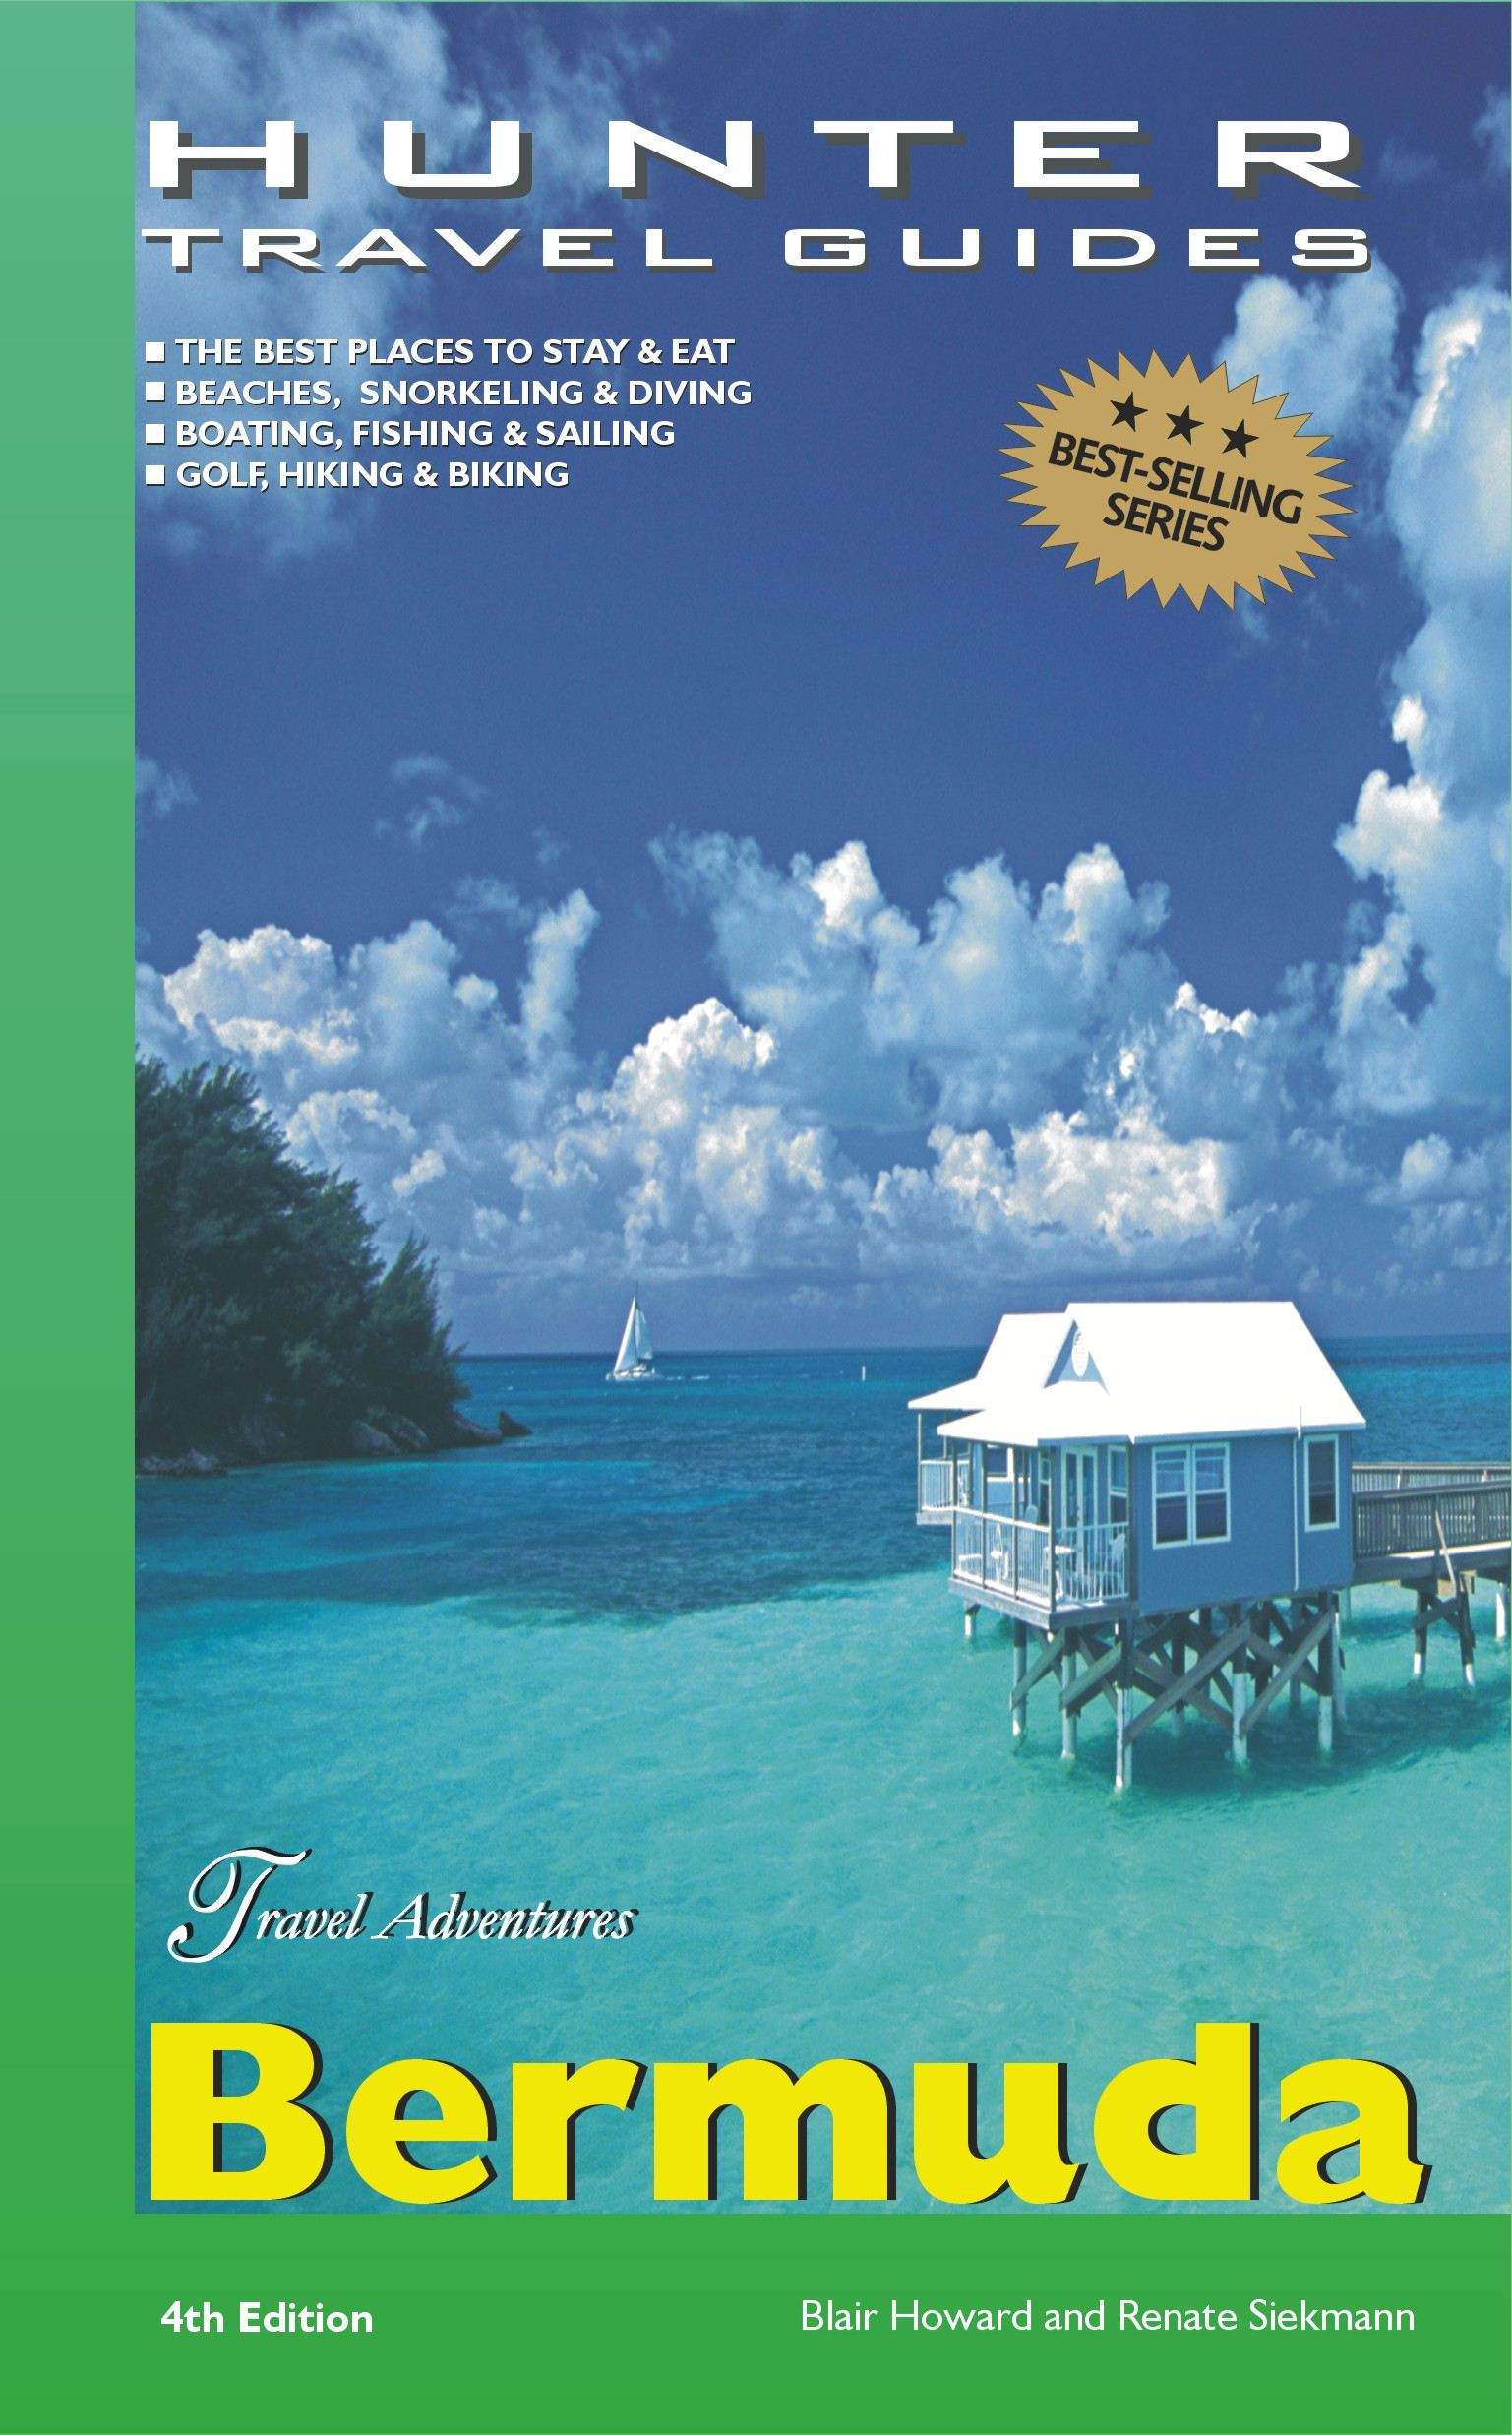 Bermuda Adventure Guide 4th ed.